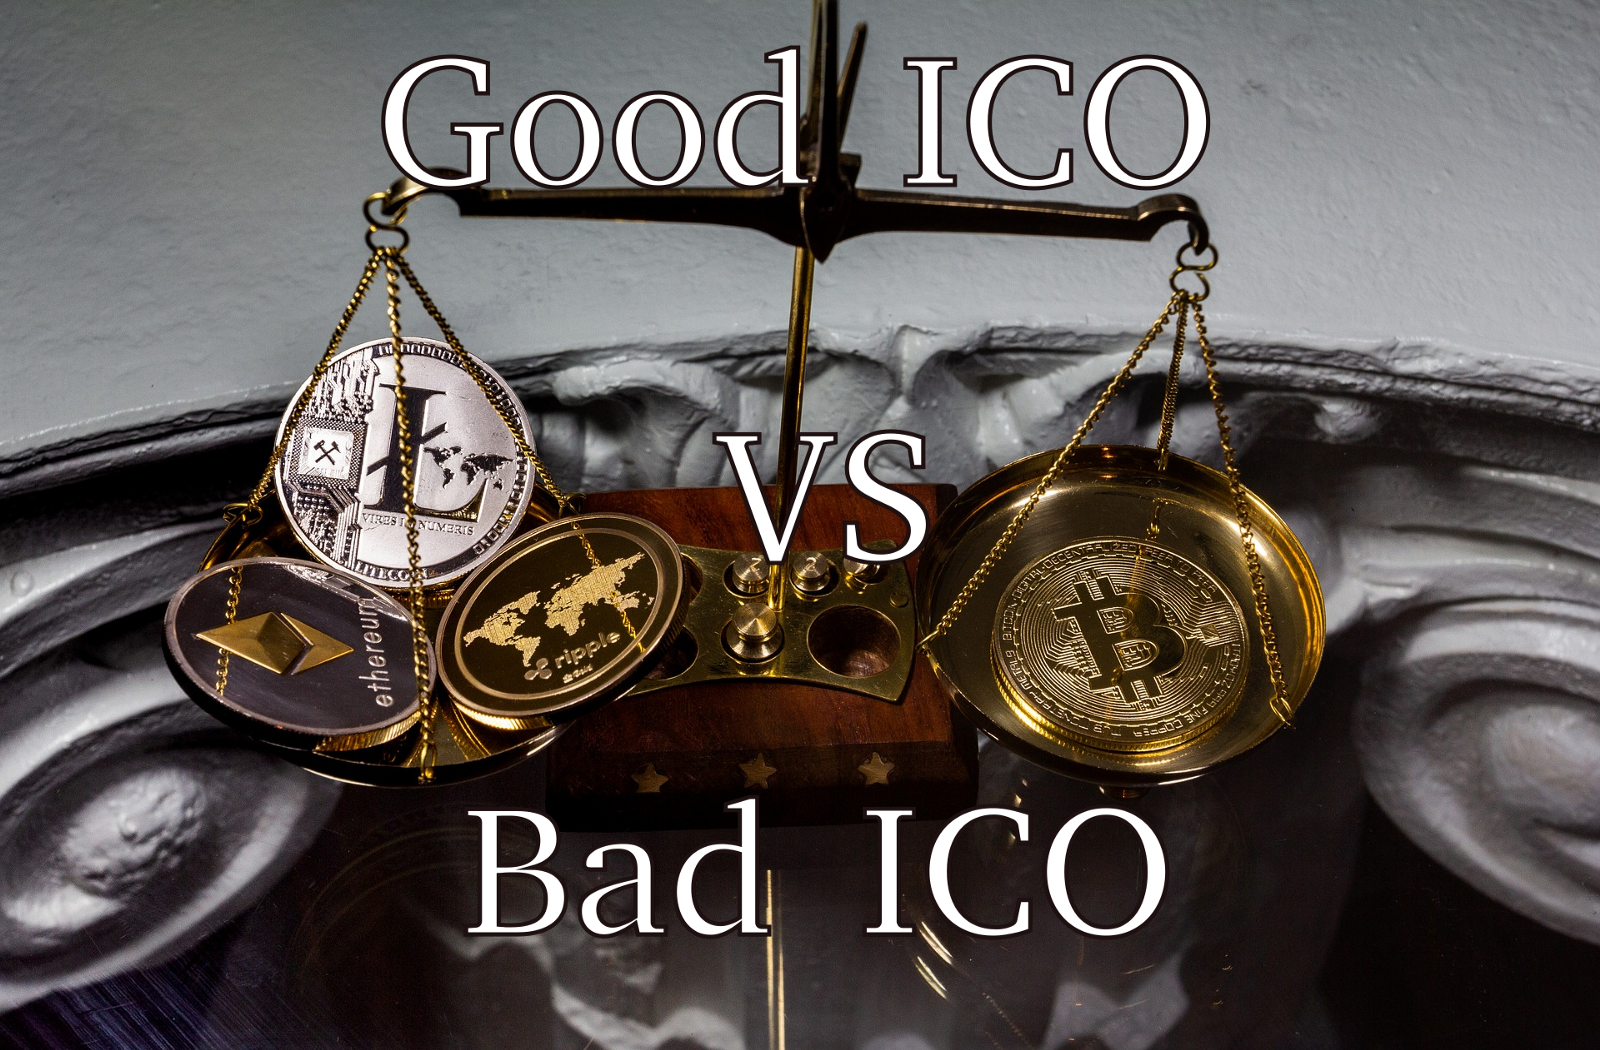 /how-to-spot-good-ico-how-to-spot-scam-ico-f0f57c1a4c38 feature image